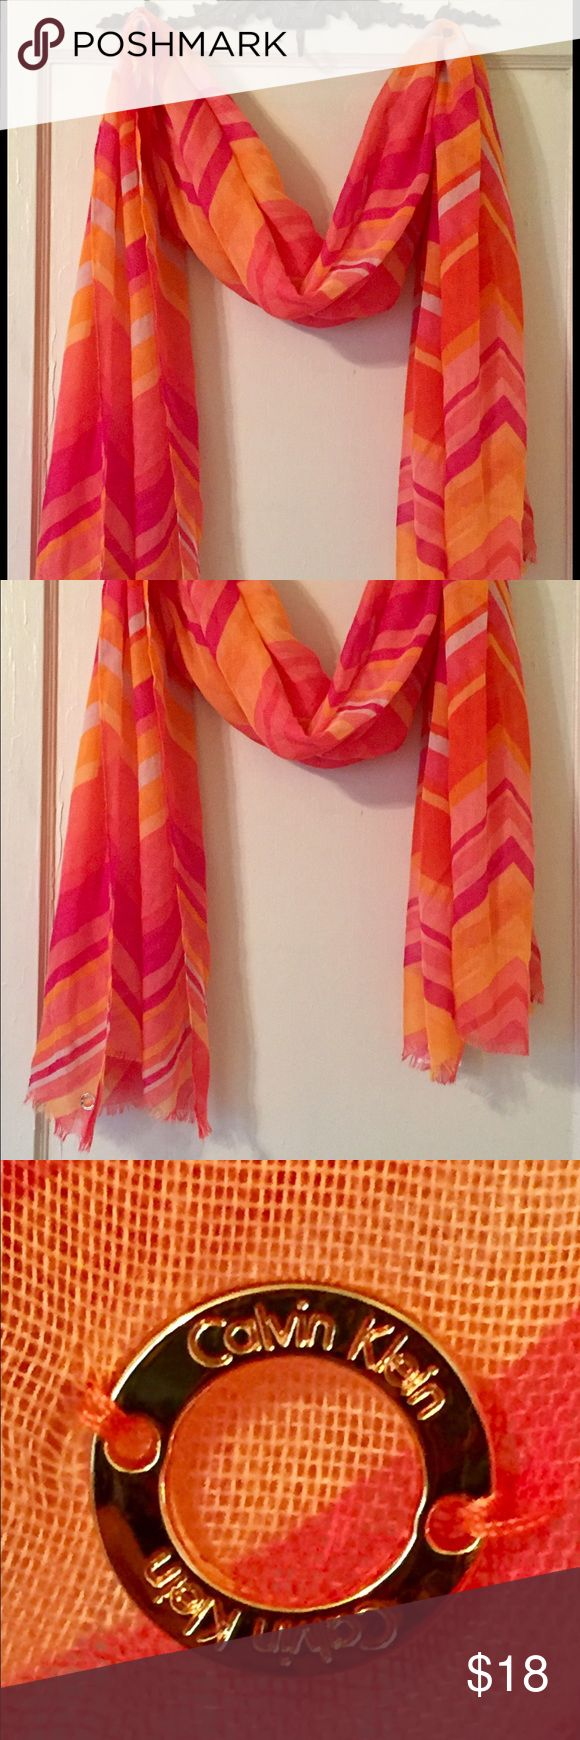 Calvin Klein Sunset Scarf NWT Calvin Klein Sunset Scarf! Shades of pink/orange and a large zig zag design. Totally 60's vibe.  Perfect to brighten up your OOTD or wear professionally.  100% Polyester Calvin Klein Accessories Scarves & Wraps